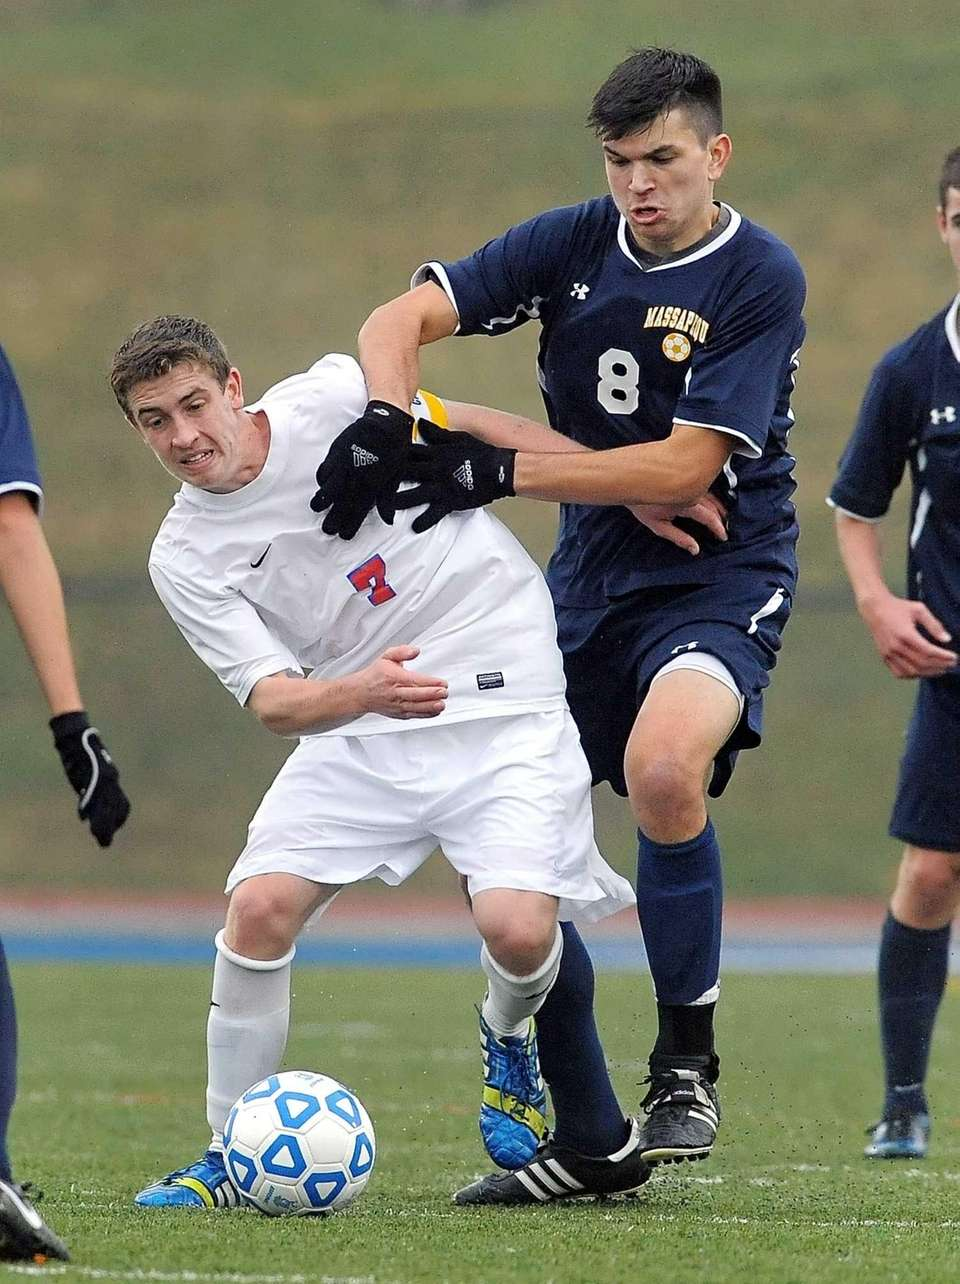 Massapequa's Brendan Gallivan, right, tries to get the